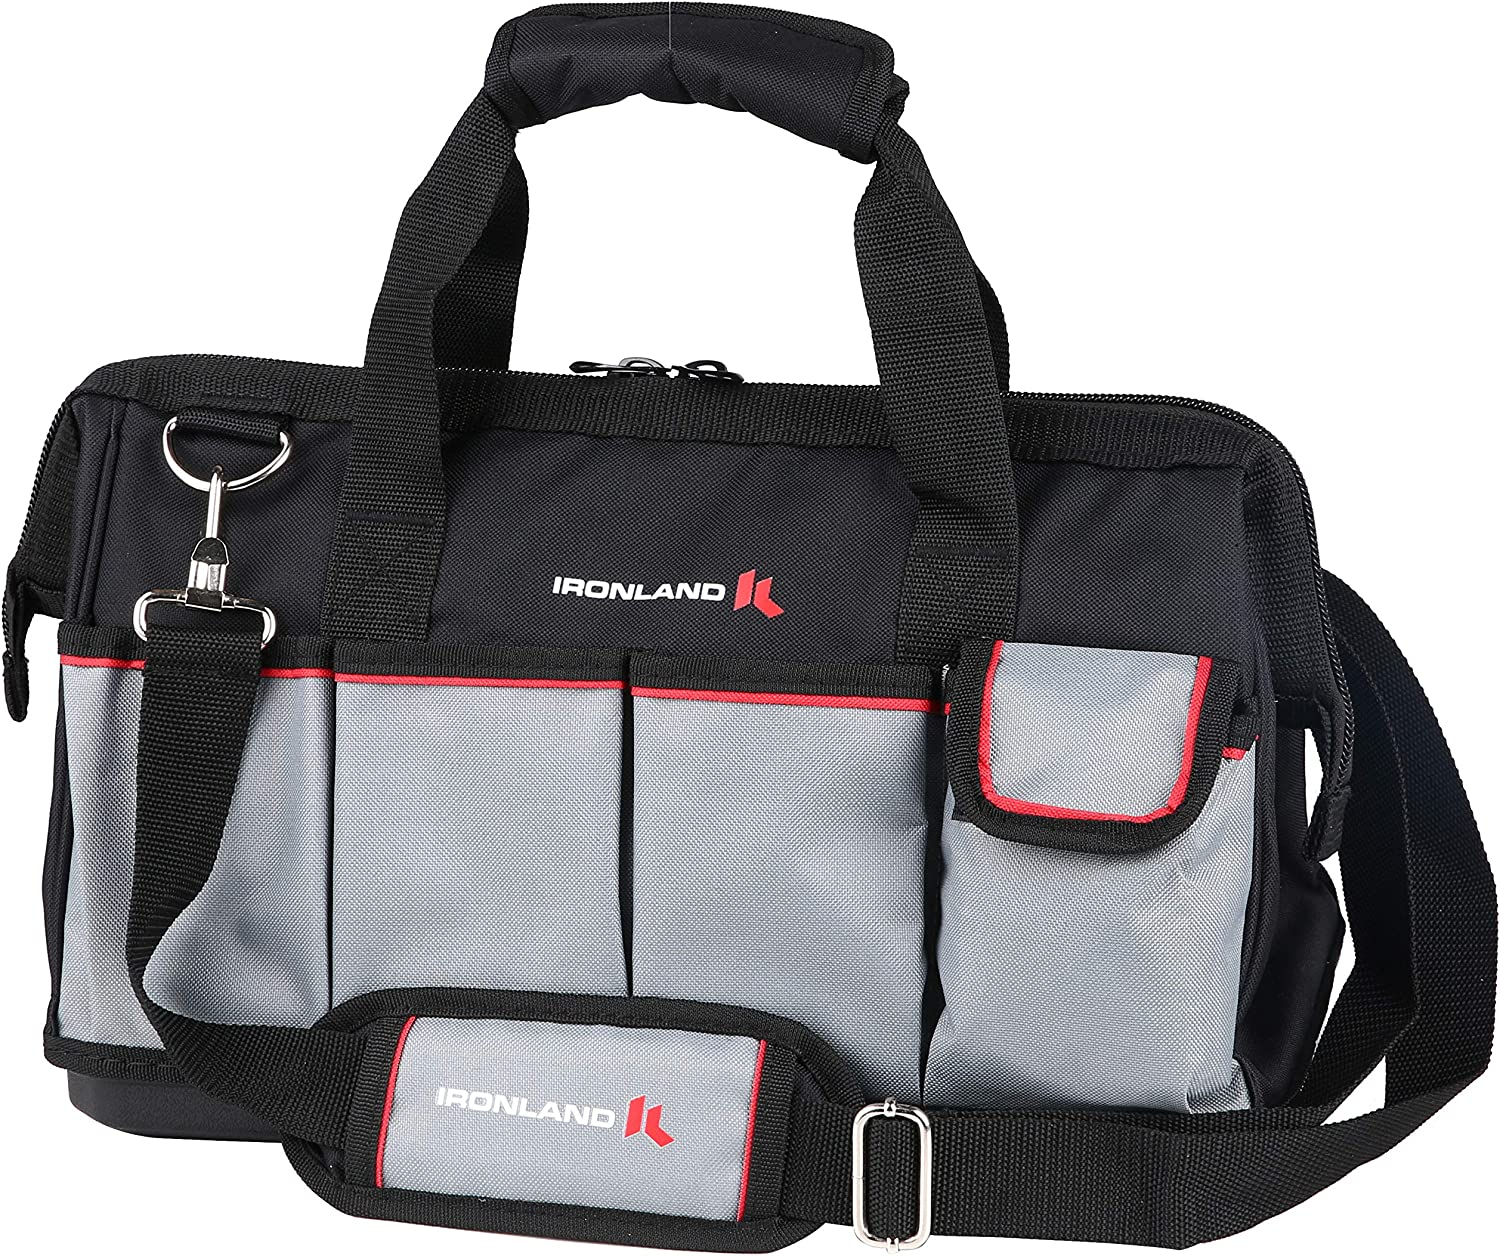 Tool Bag Wide Mouth with Multi-Compartment Pockets, Organizer Bag with Adjustable Shoulder Strap (16'')